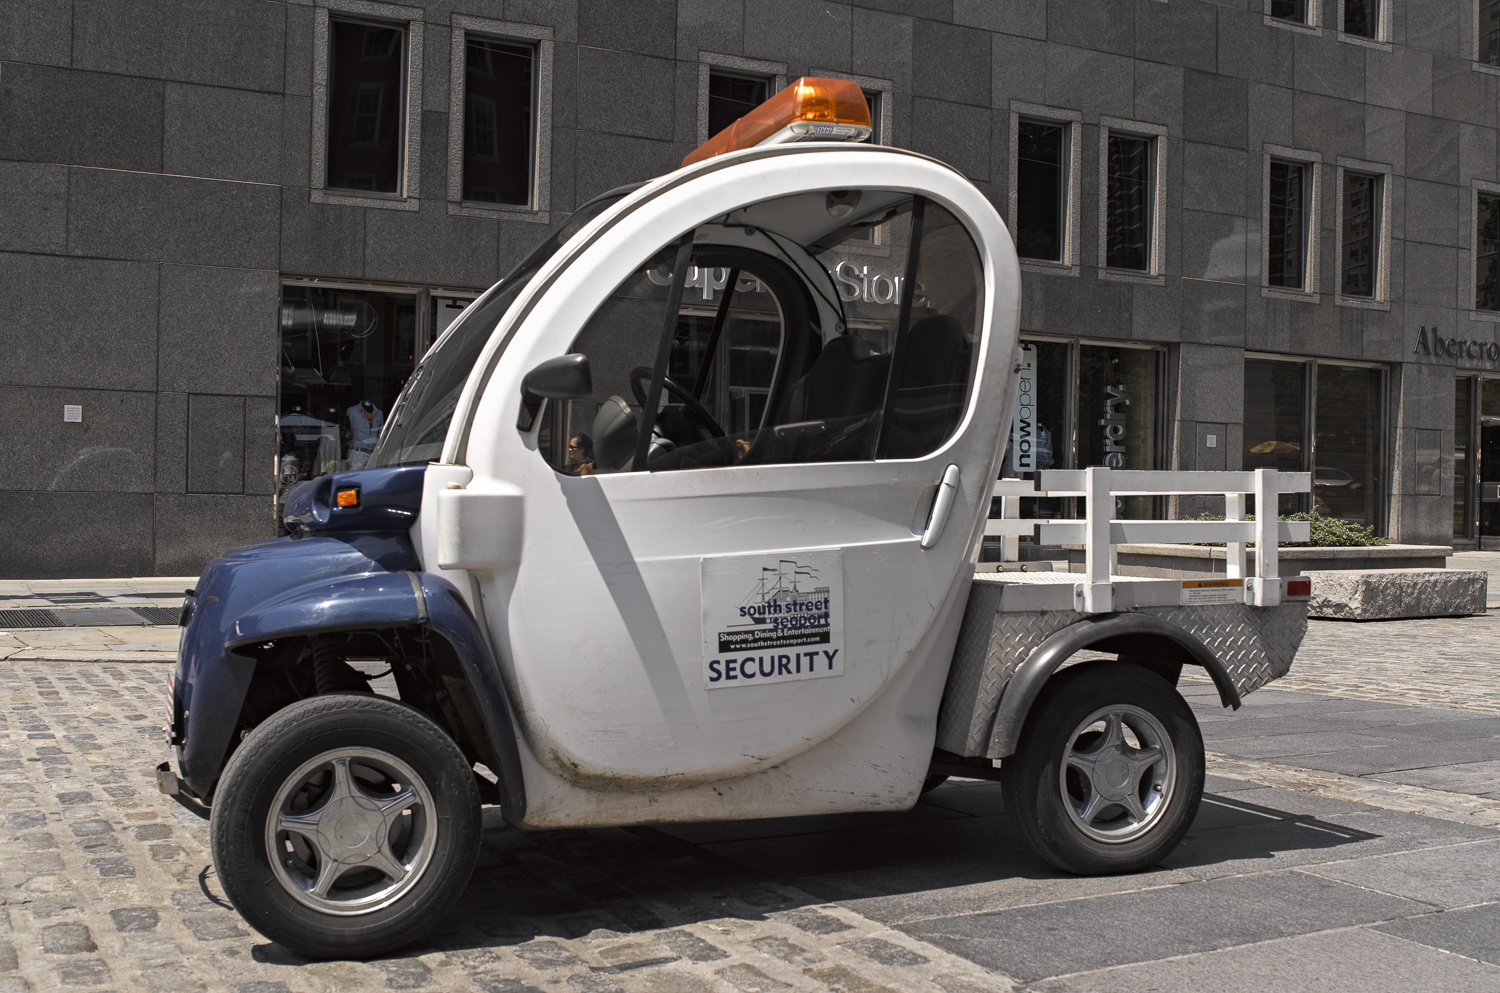 Security vehicle, New York, 2011